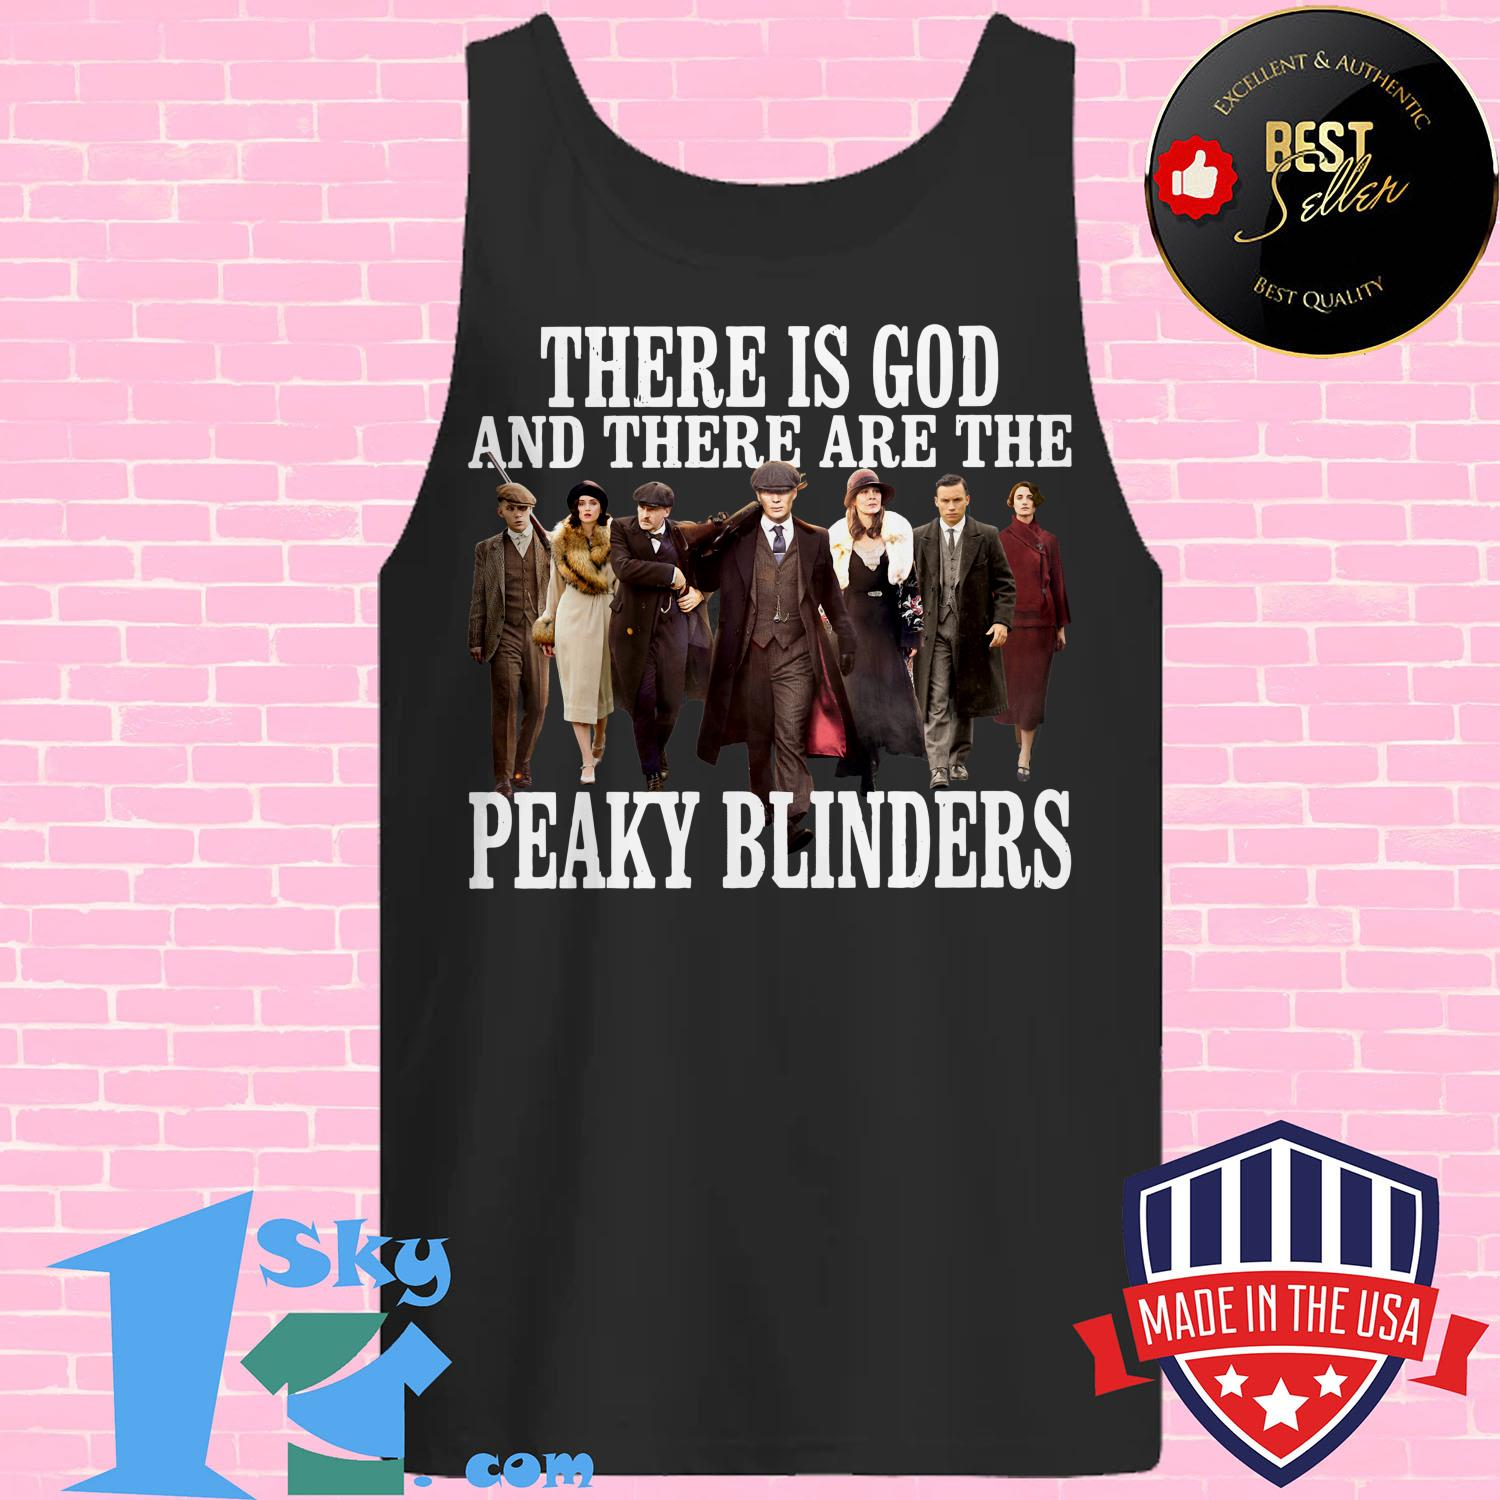 there is god and there are the peaky blinders tank top - There is God and There are The Peaky Blinders shirt